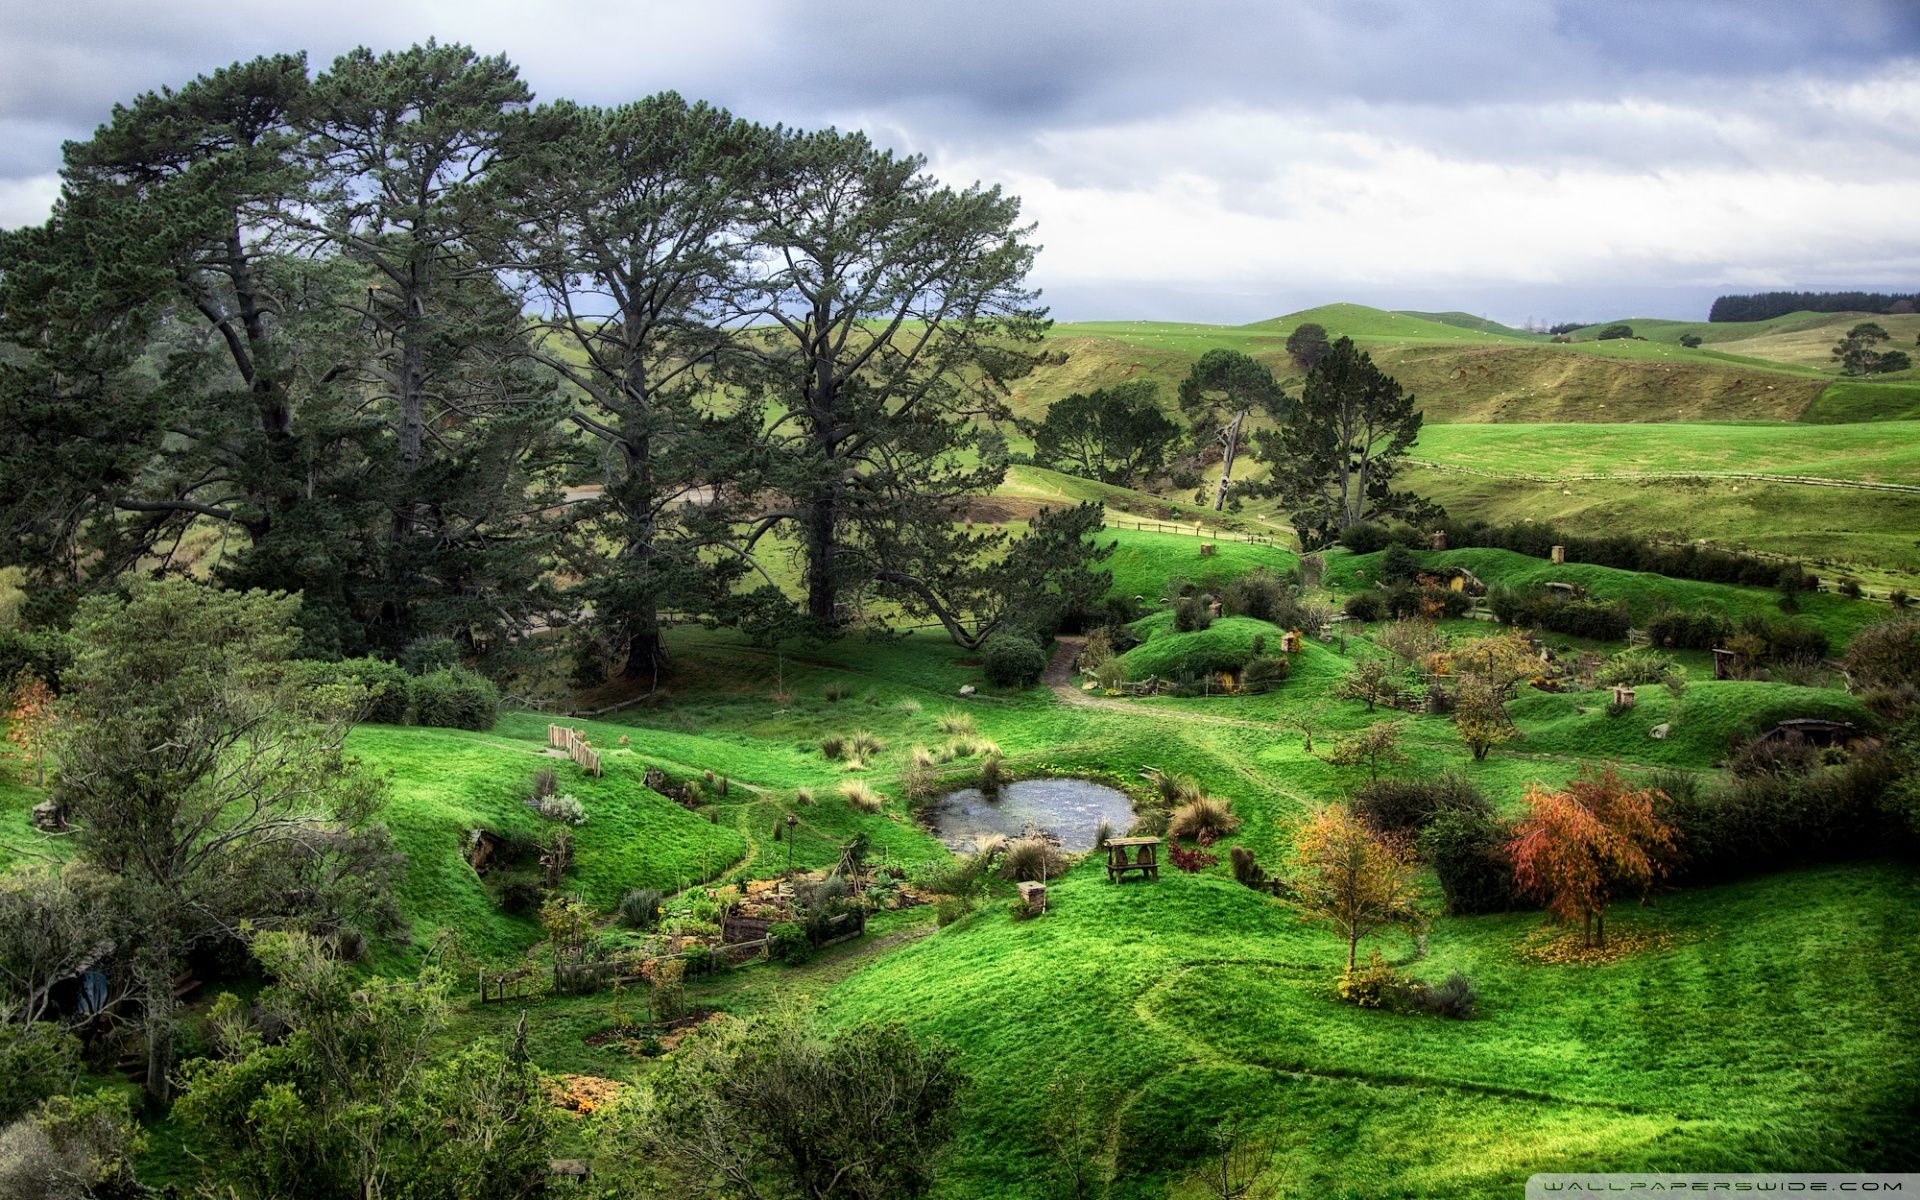 The Shire Wallpapers - Top Free The Shire Backgrounds - WallpaperAccess